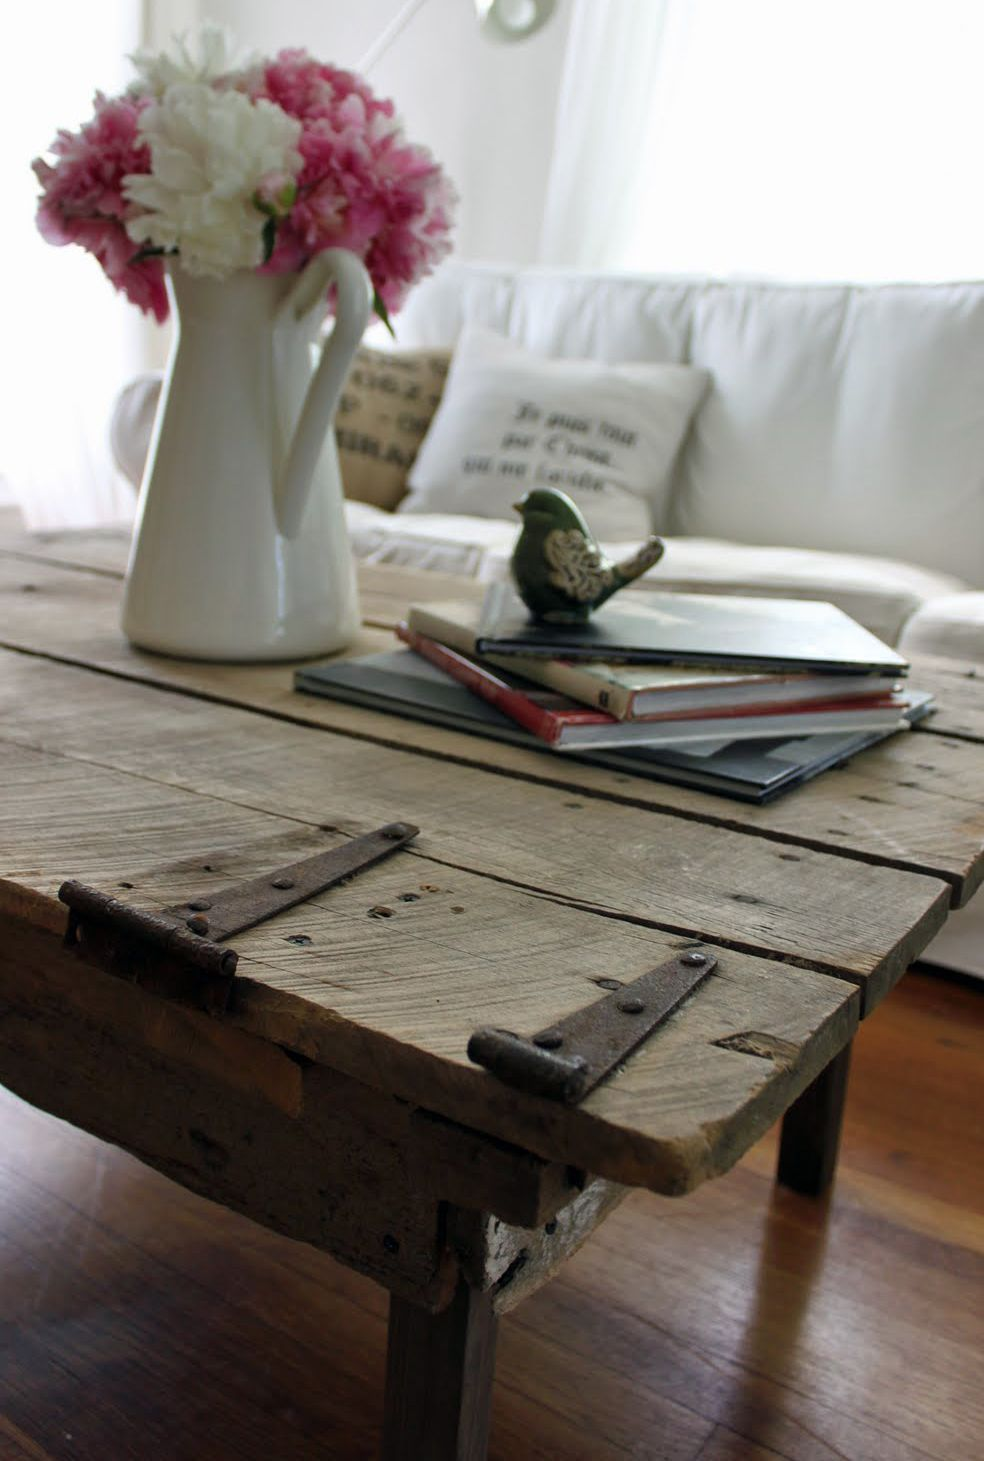 35 uniquely and cool diy coffee table ideas for small living room 35 uniquely and cool diy coffee table ideas for small living room diy coffee table ideas easy diy coffee table ideas paint diy coffee table ideas wood solutioingenieria Gallery